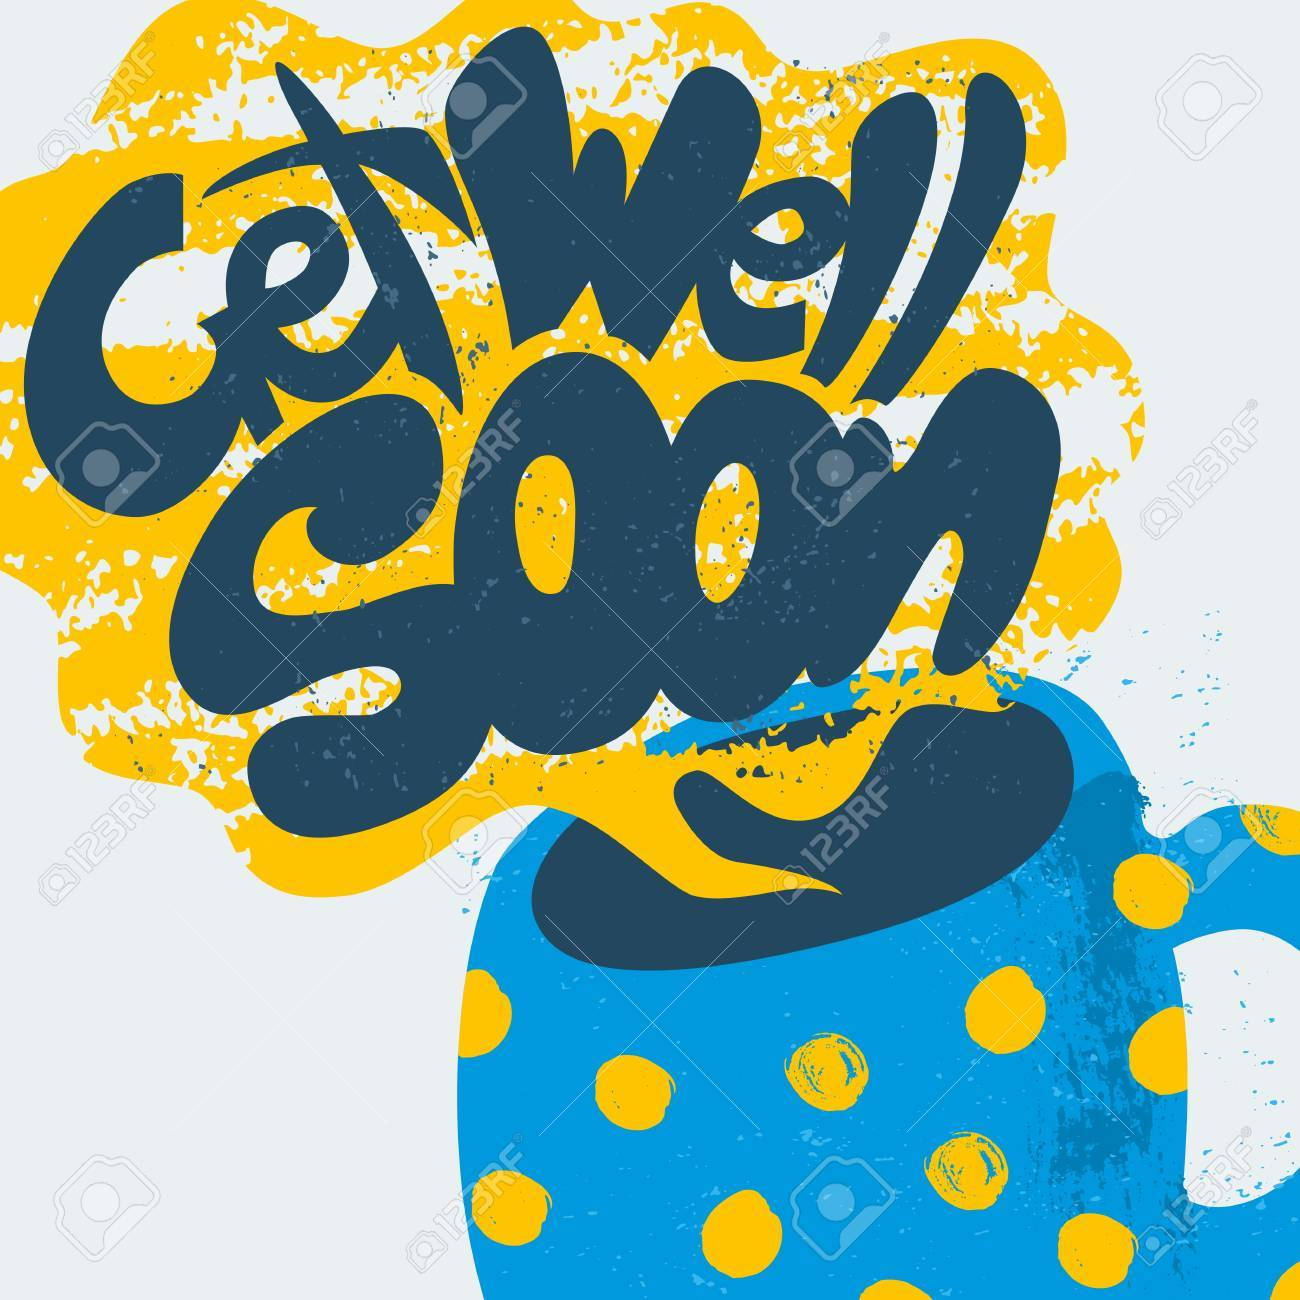 get well soon decorative card hand drawn poster with polka dot